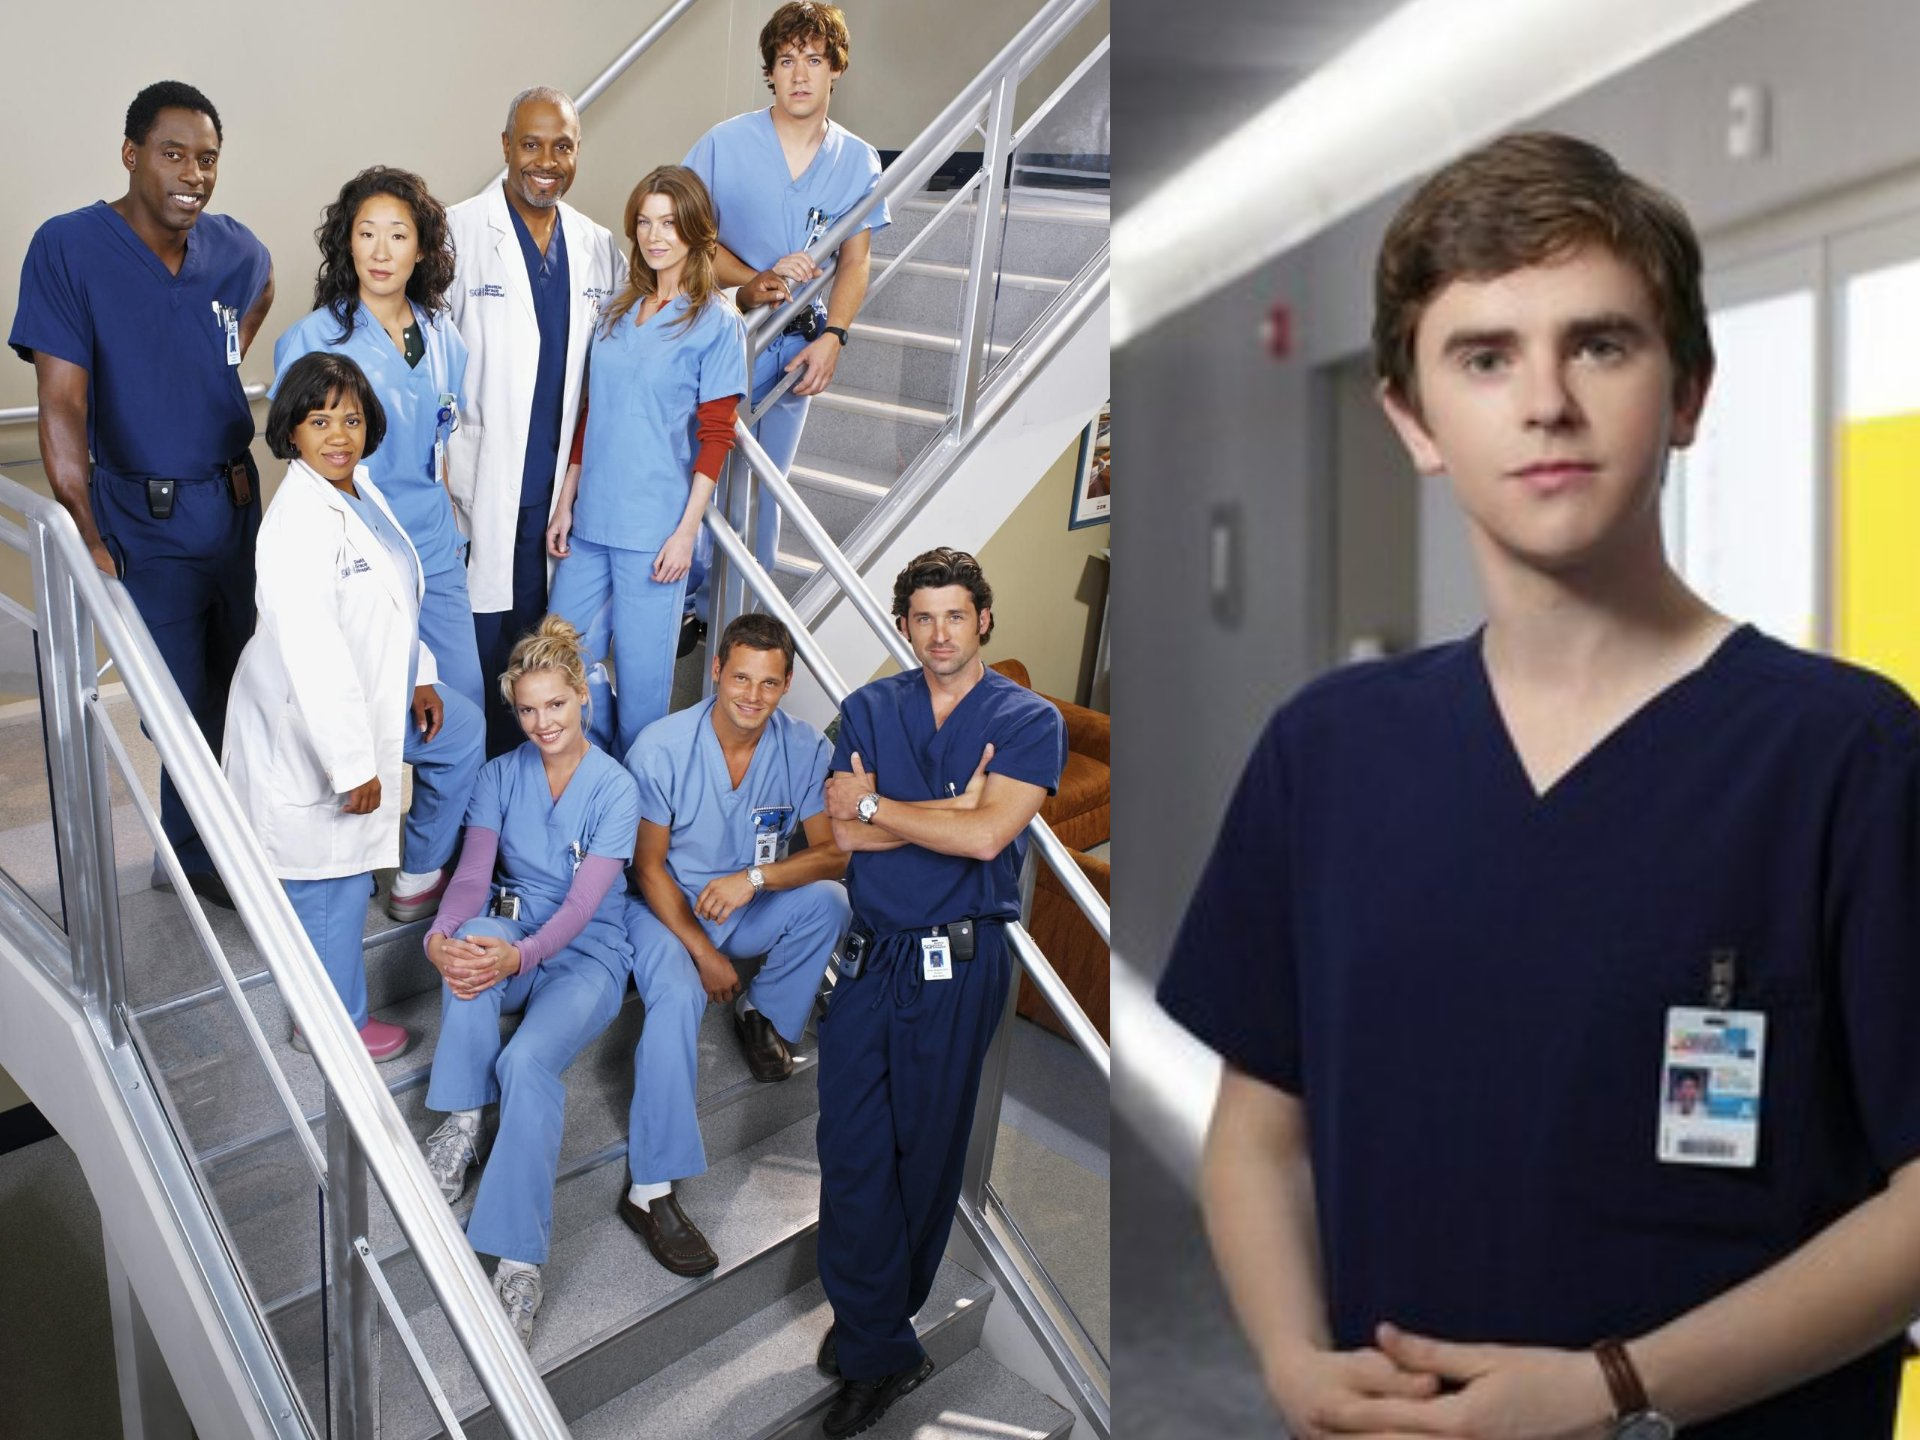 Anatomía de Grey y The Good Doctor donan su material sanitario a hospitales